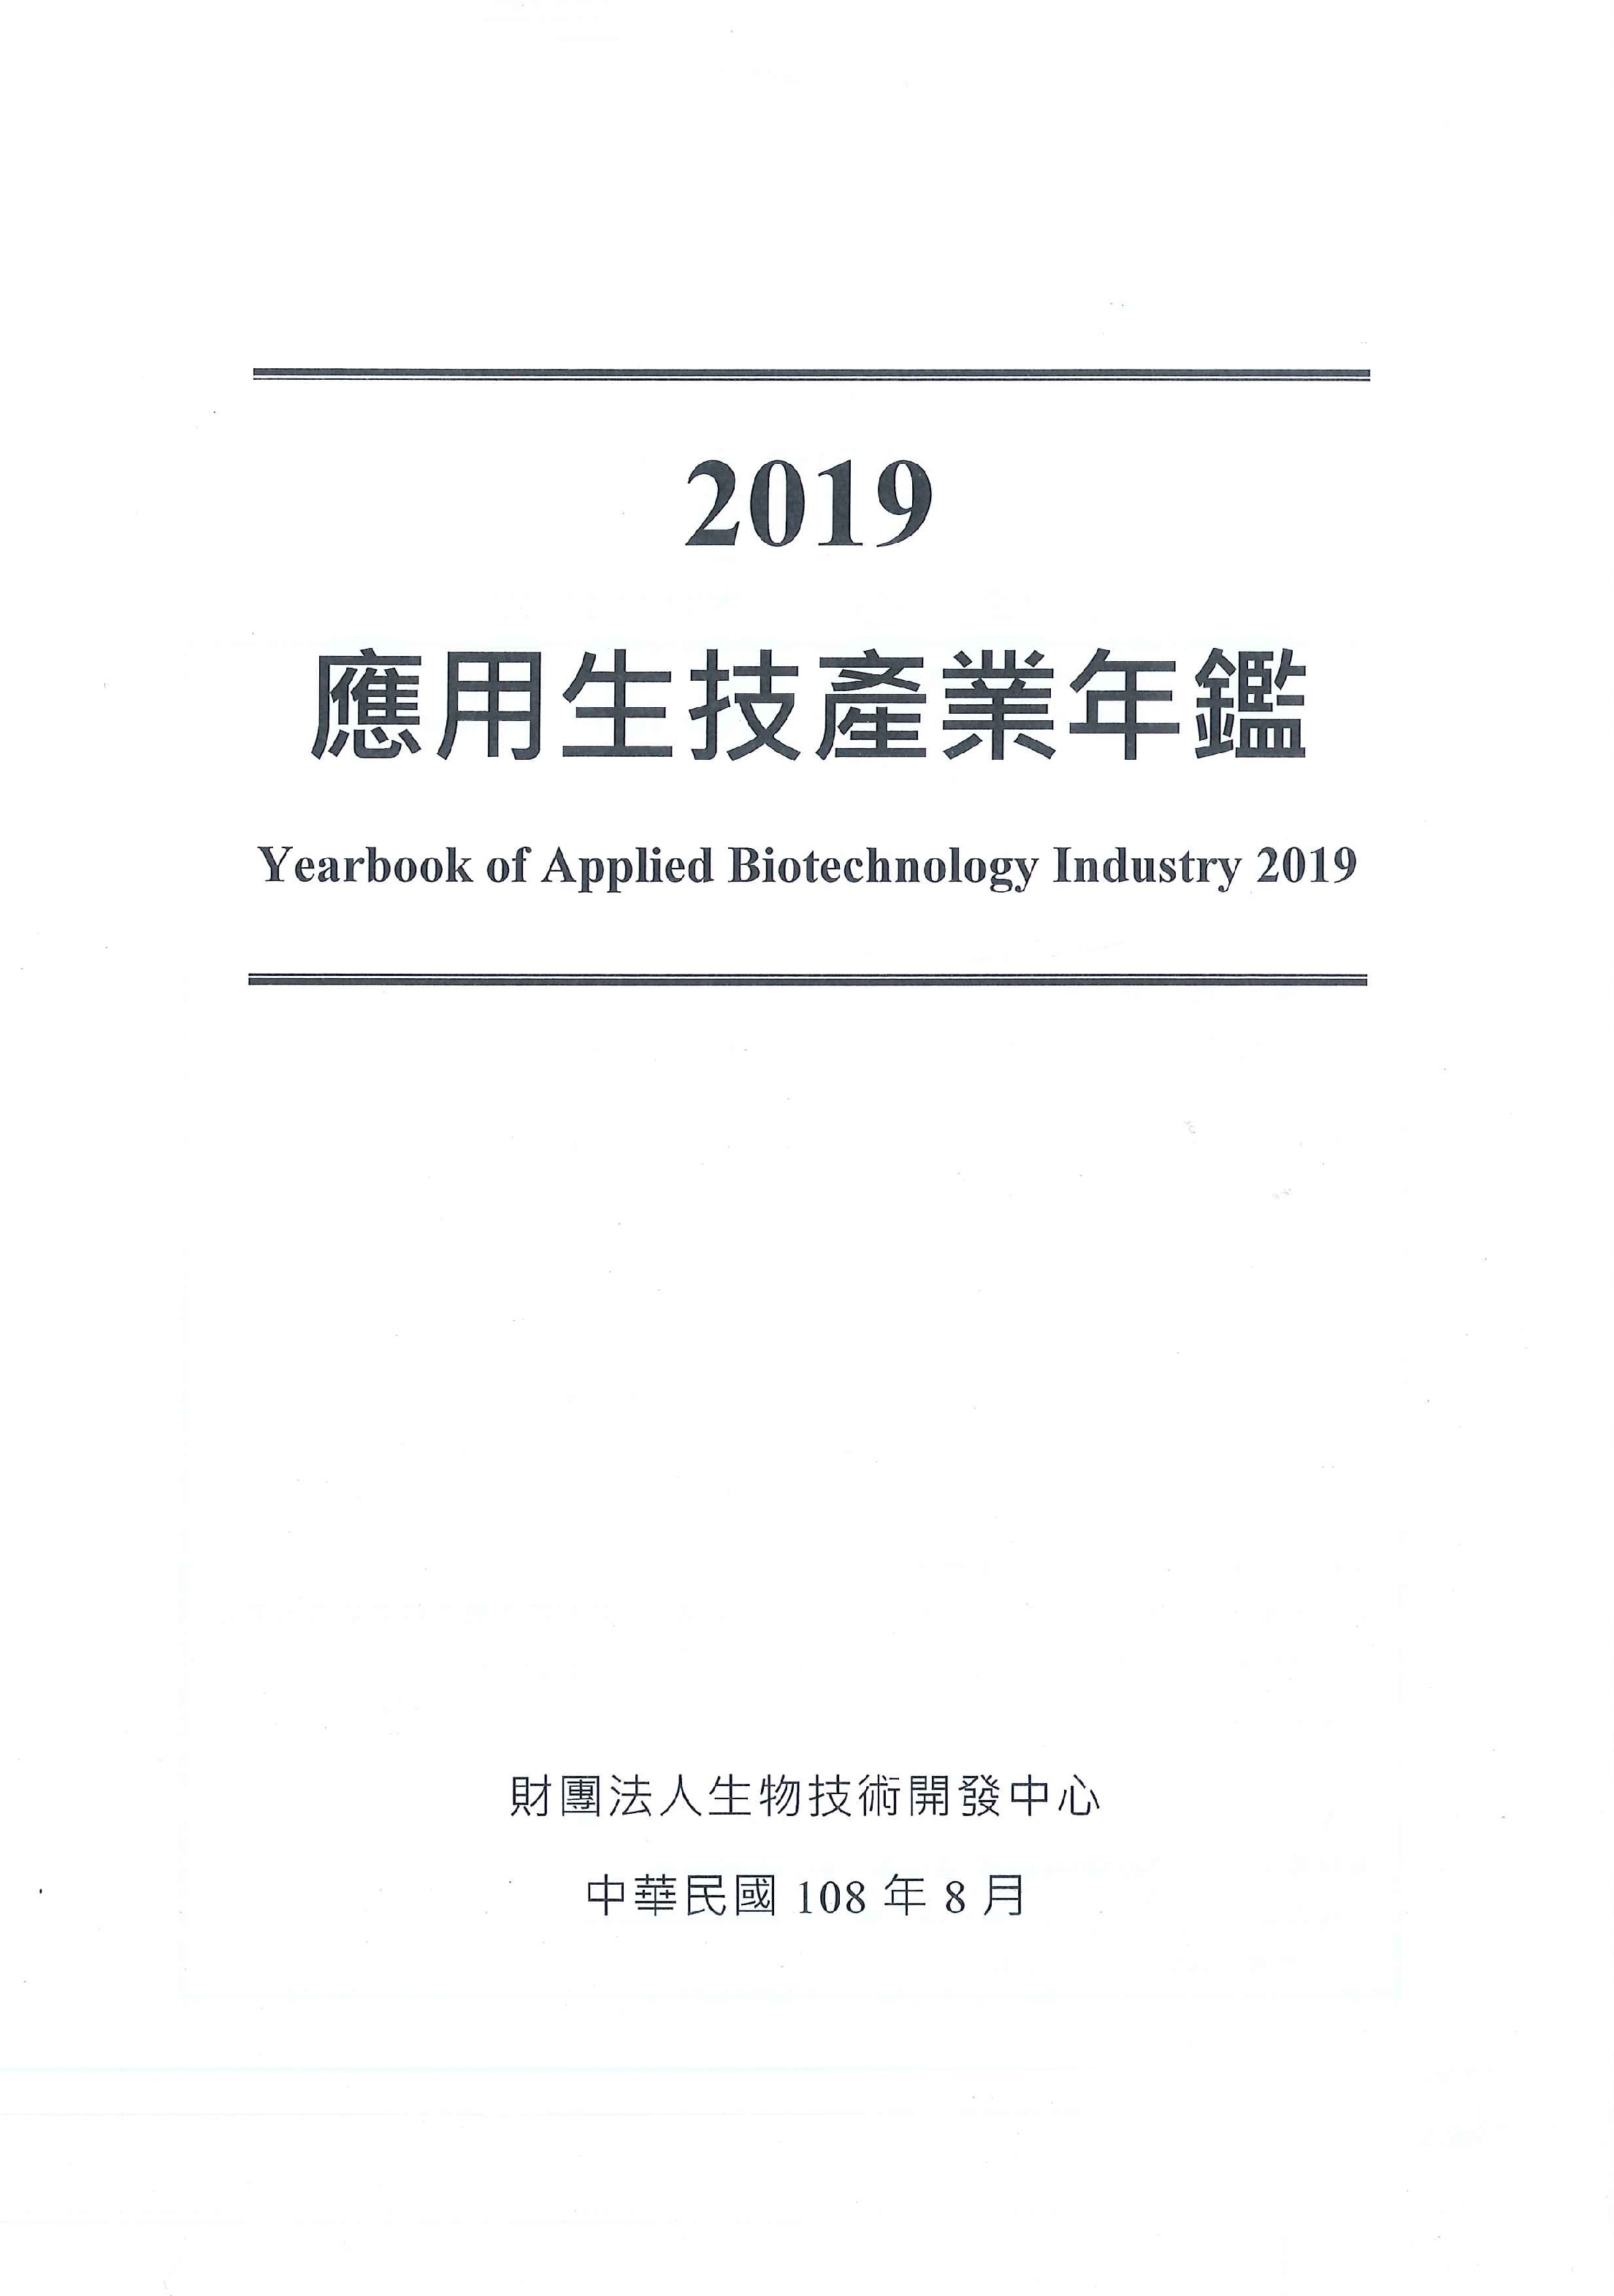 應用生技產業年鑑=Yearbook of applied biotechnology industry